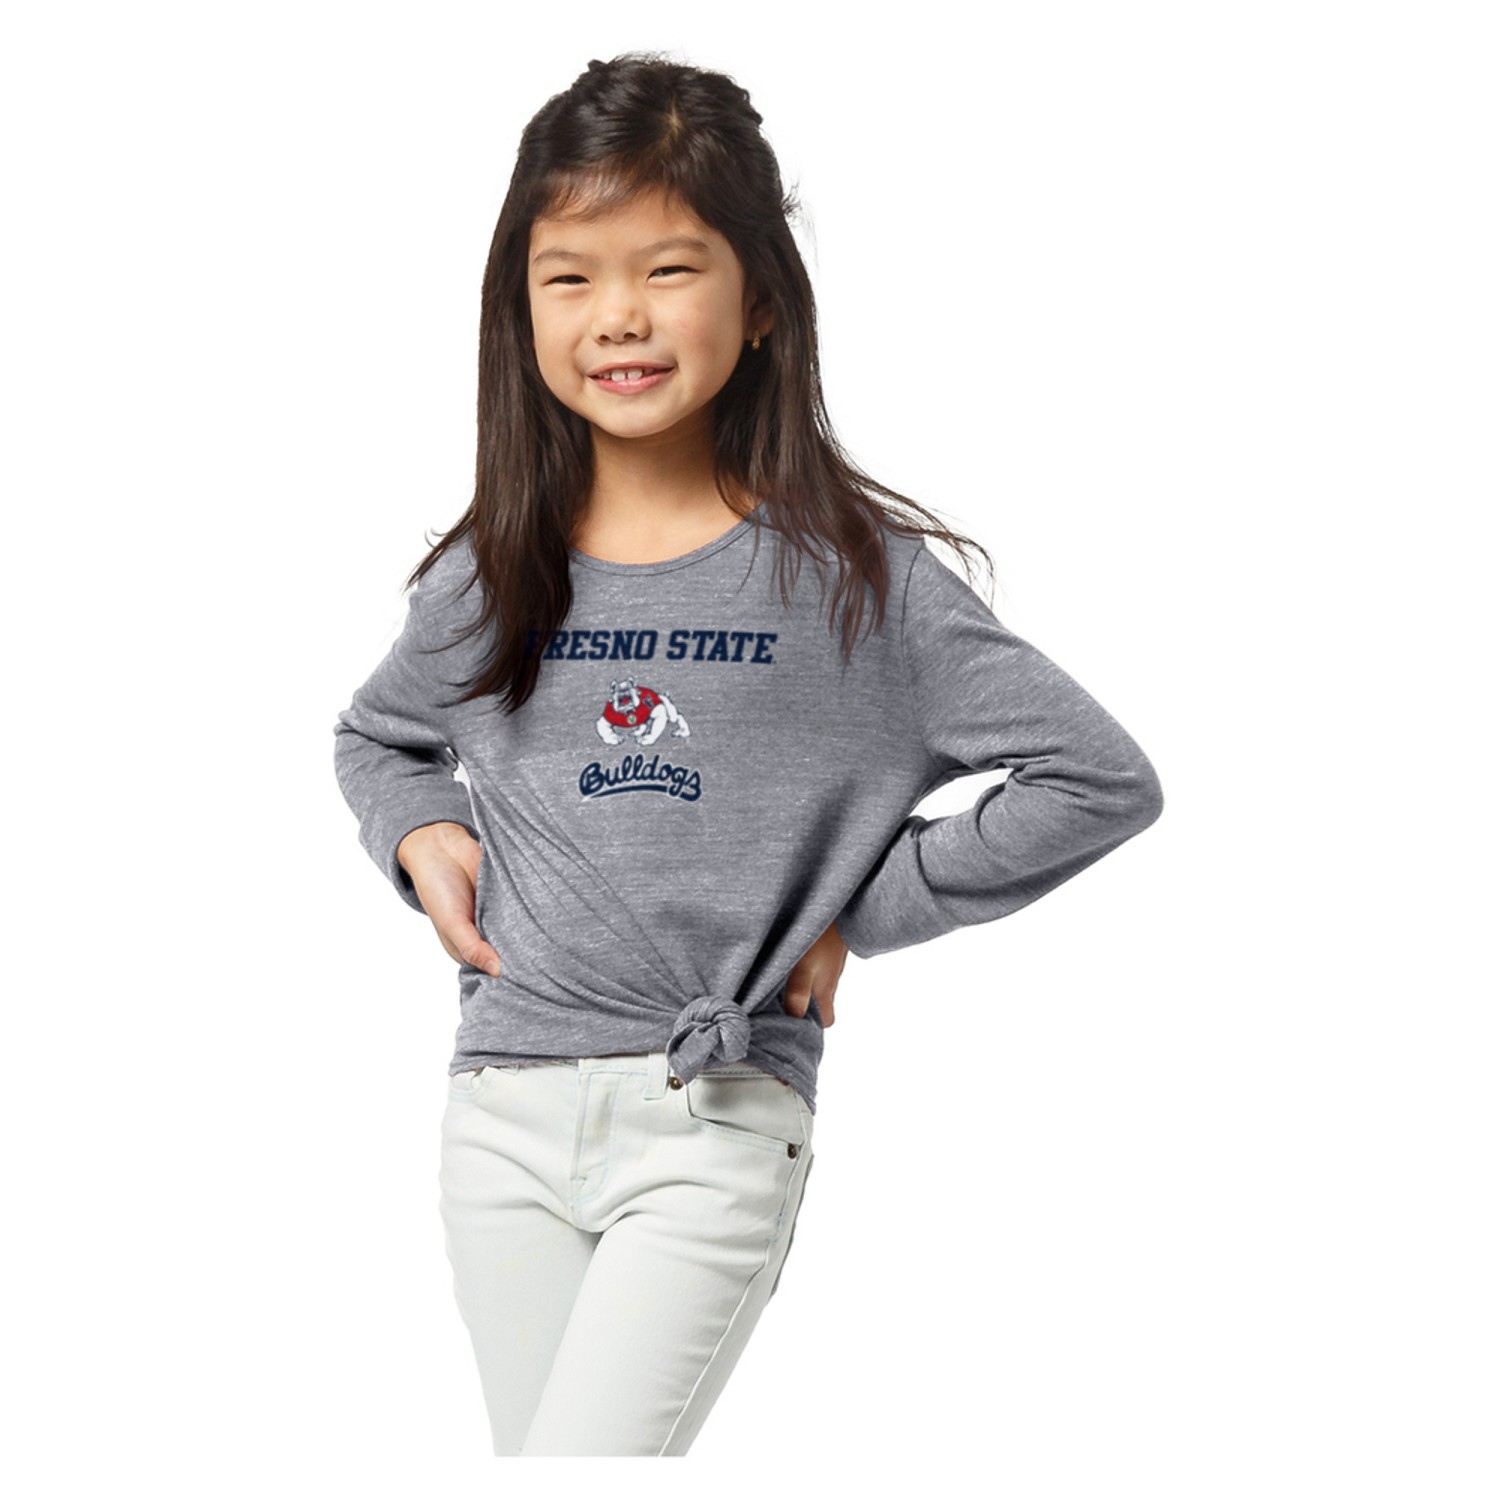 Fresno State League Girl's Triblend Side Tie T-Shirt